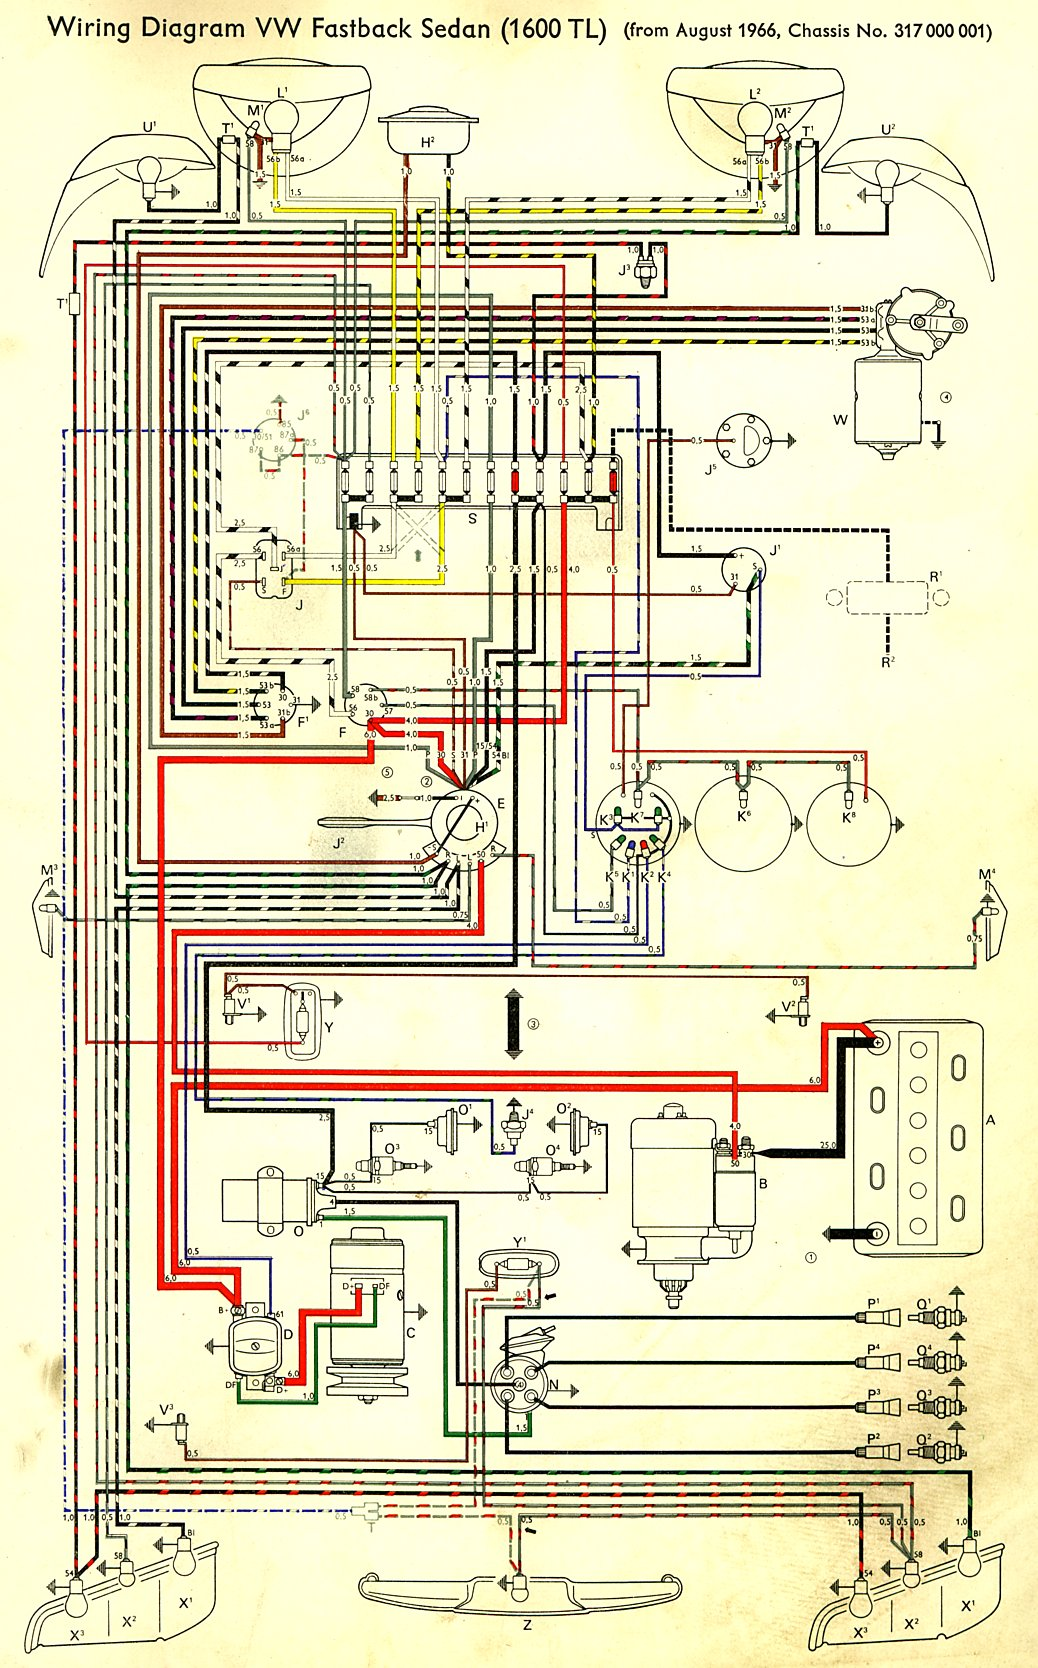 type3_1600TL_67 vw bus wiring diagram 1965 vw bus wiring diagram \u2022 wiring diagrams 1965 vw bus wiring harness at alyssarenee.co